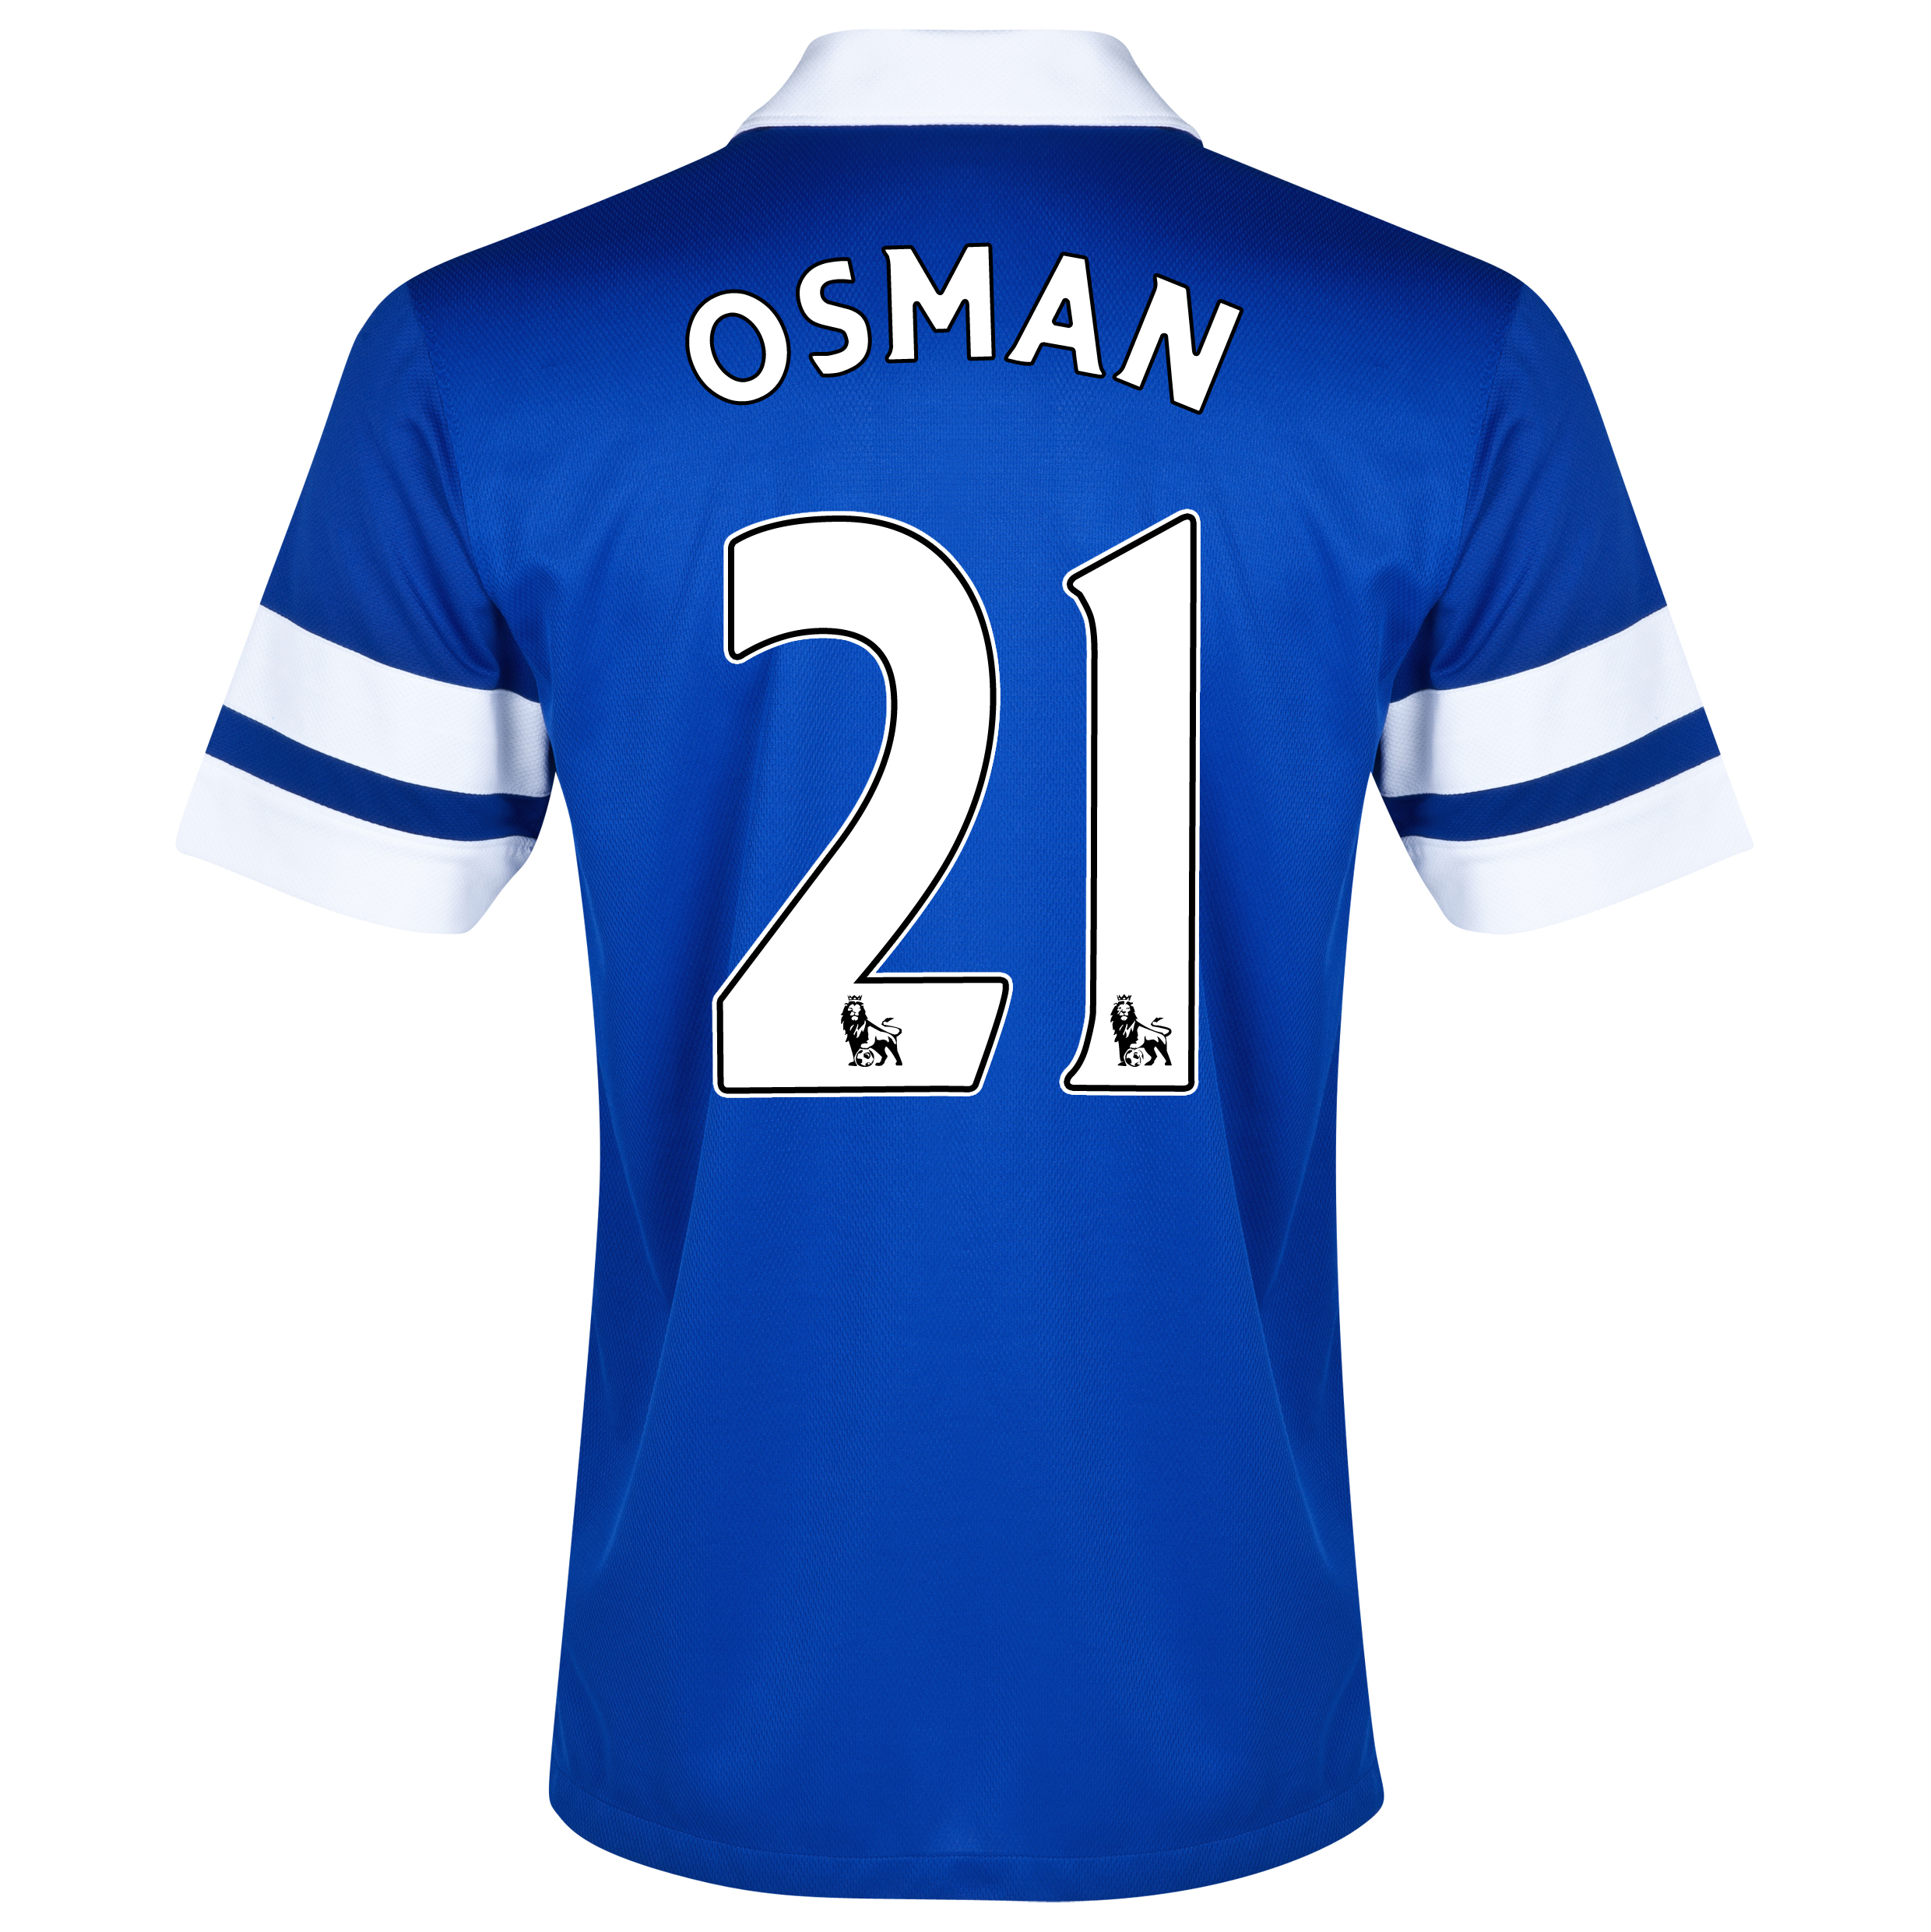 Everton Home Shirt 2013/14 Blue with Osman 21 printing